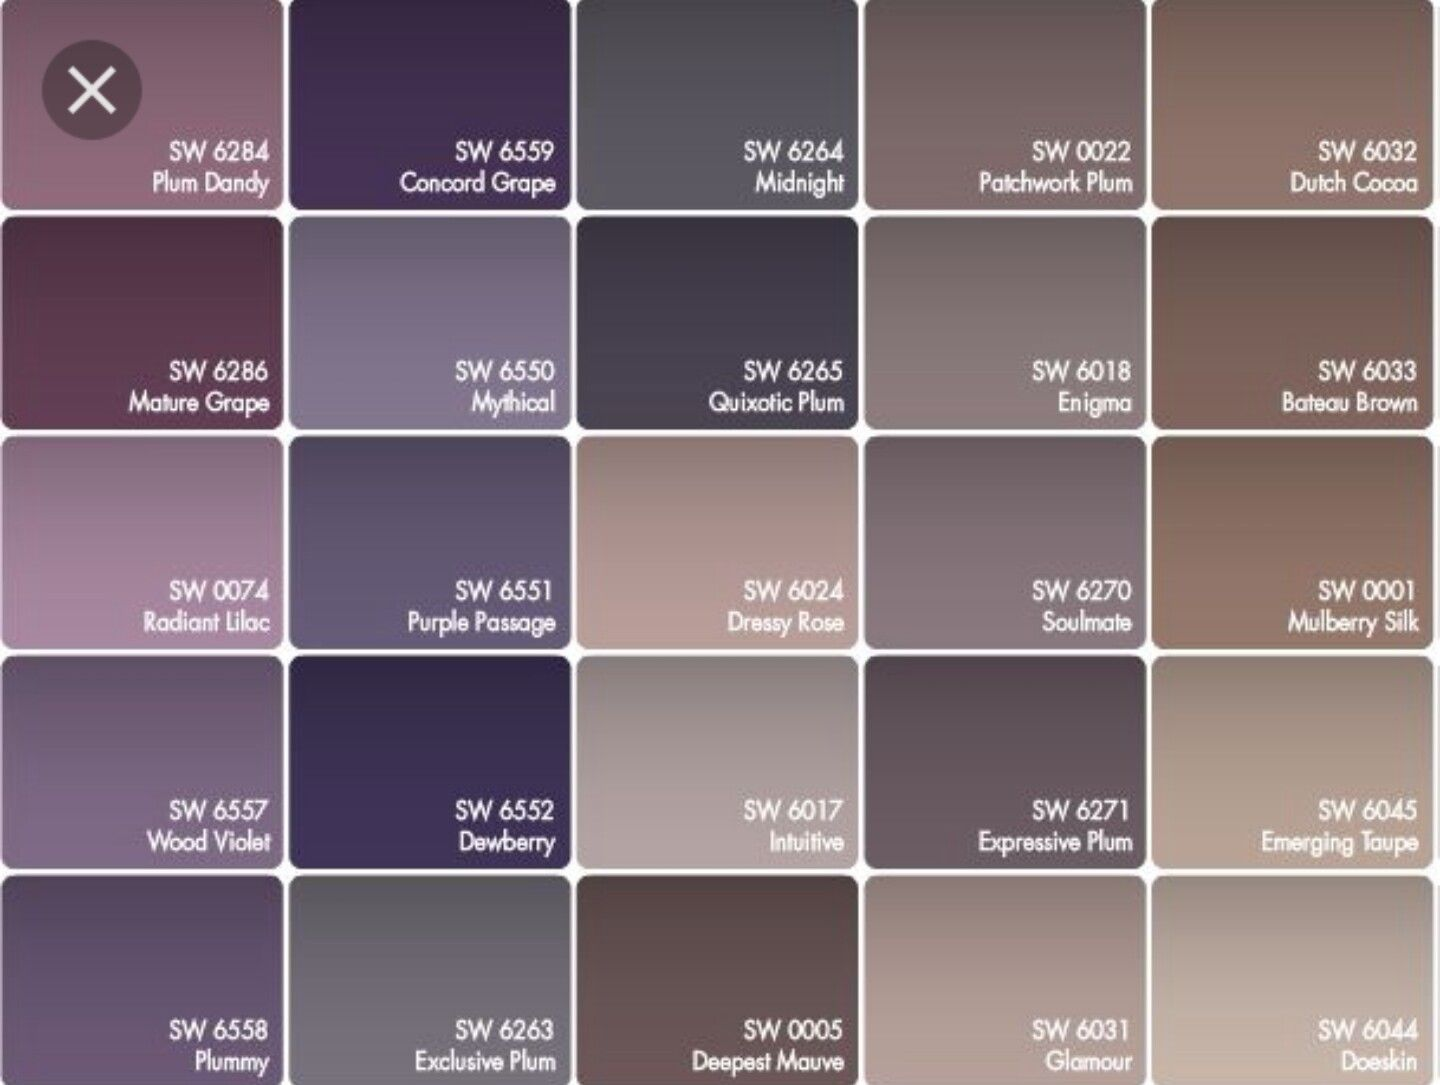 Color Scheme For Little S Room Purple And Grey Walls Tan Carpet Brown Accents In Furniture Love It